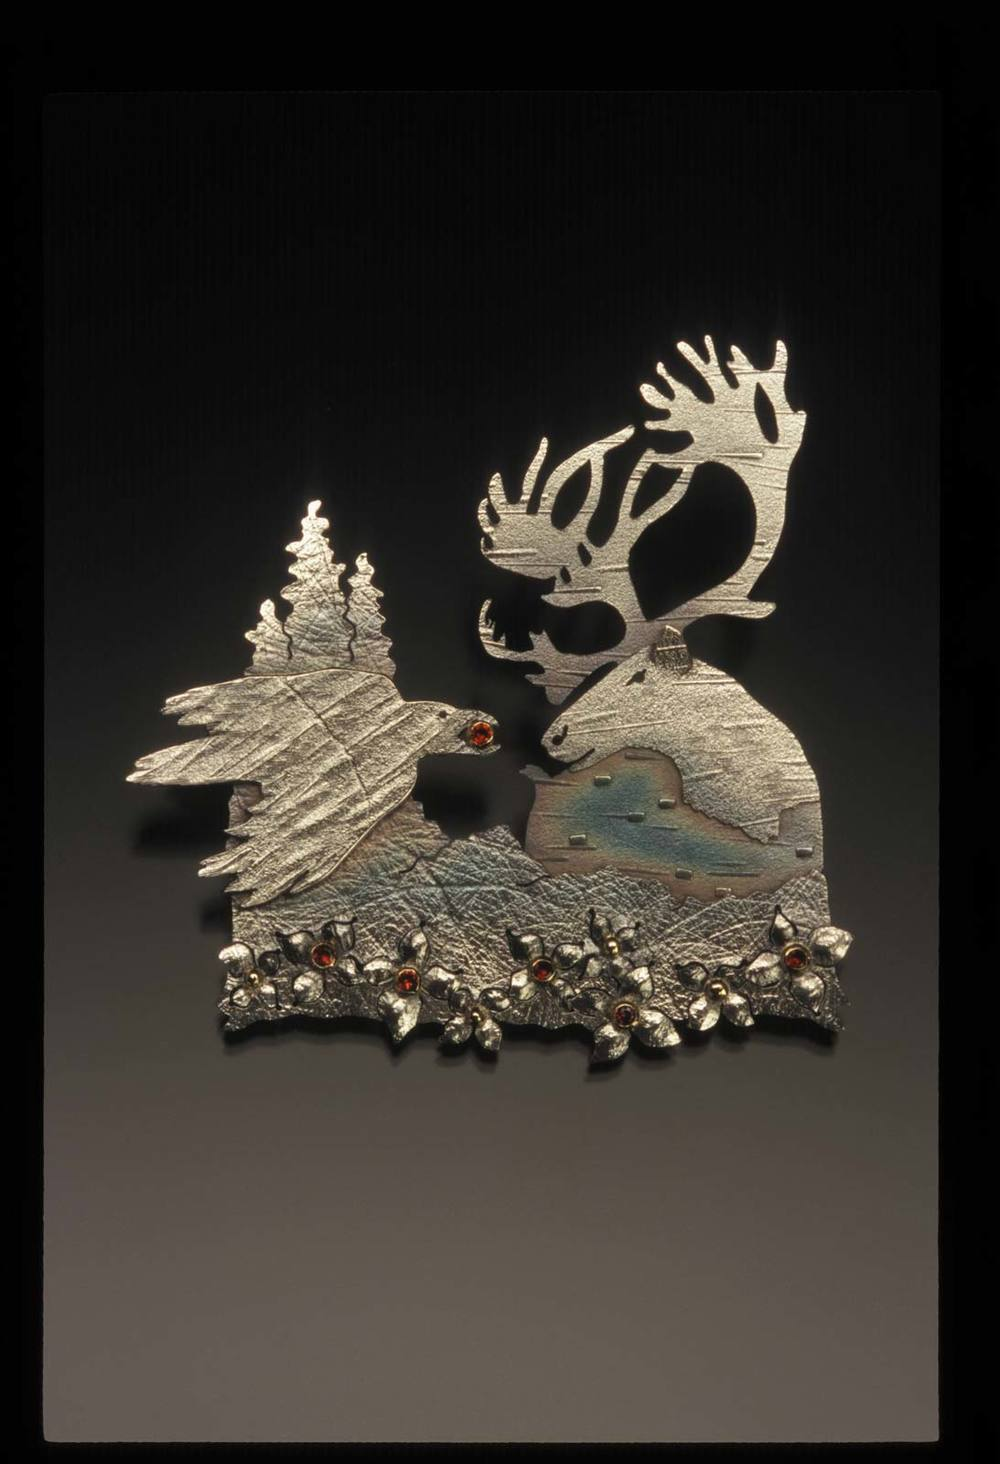 RAVEN AND CARIBOU: A DENA'INA STORY pendant of sterling silver, fourteen karat gold and garnets, 6.03 x 8.26 x 0.64 centimeters, 2007.